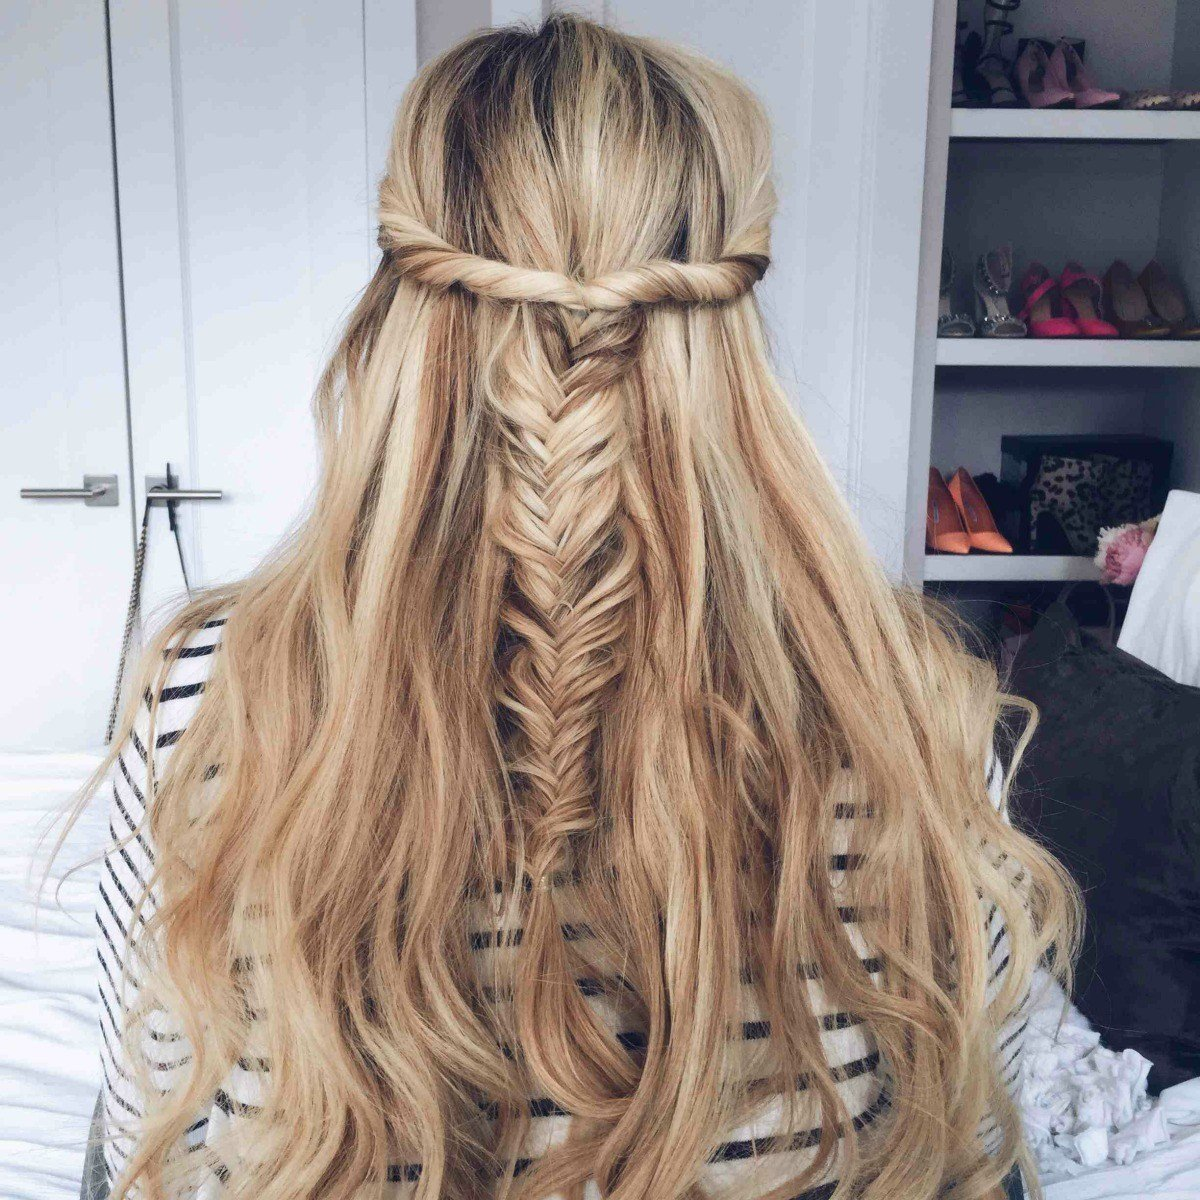 The Best 15 Casual Simple Hairstyles That Are Half Up Half Down Pictures